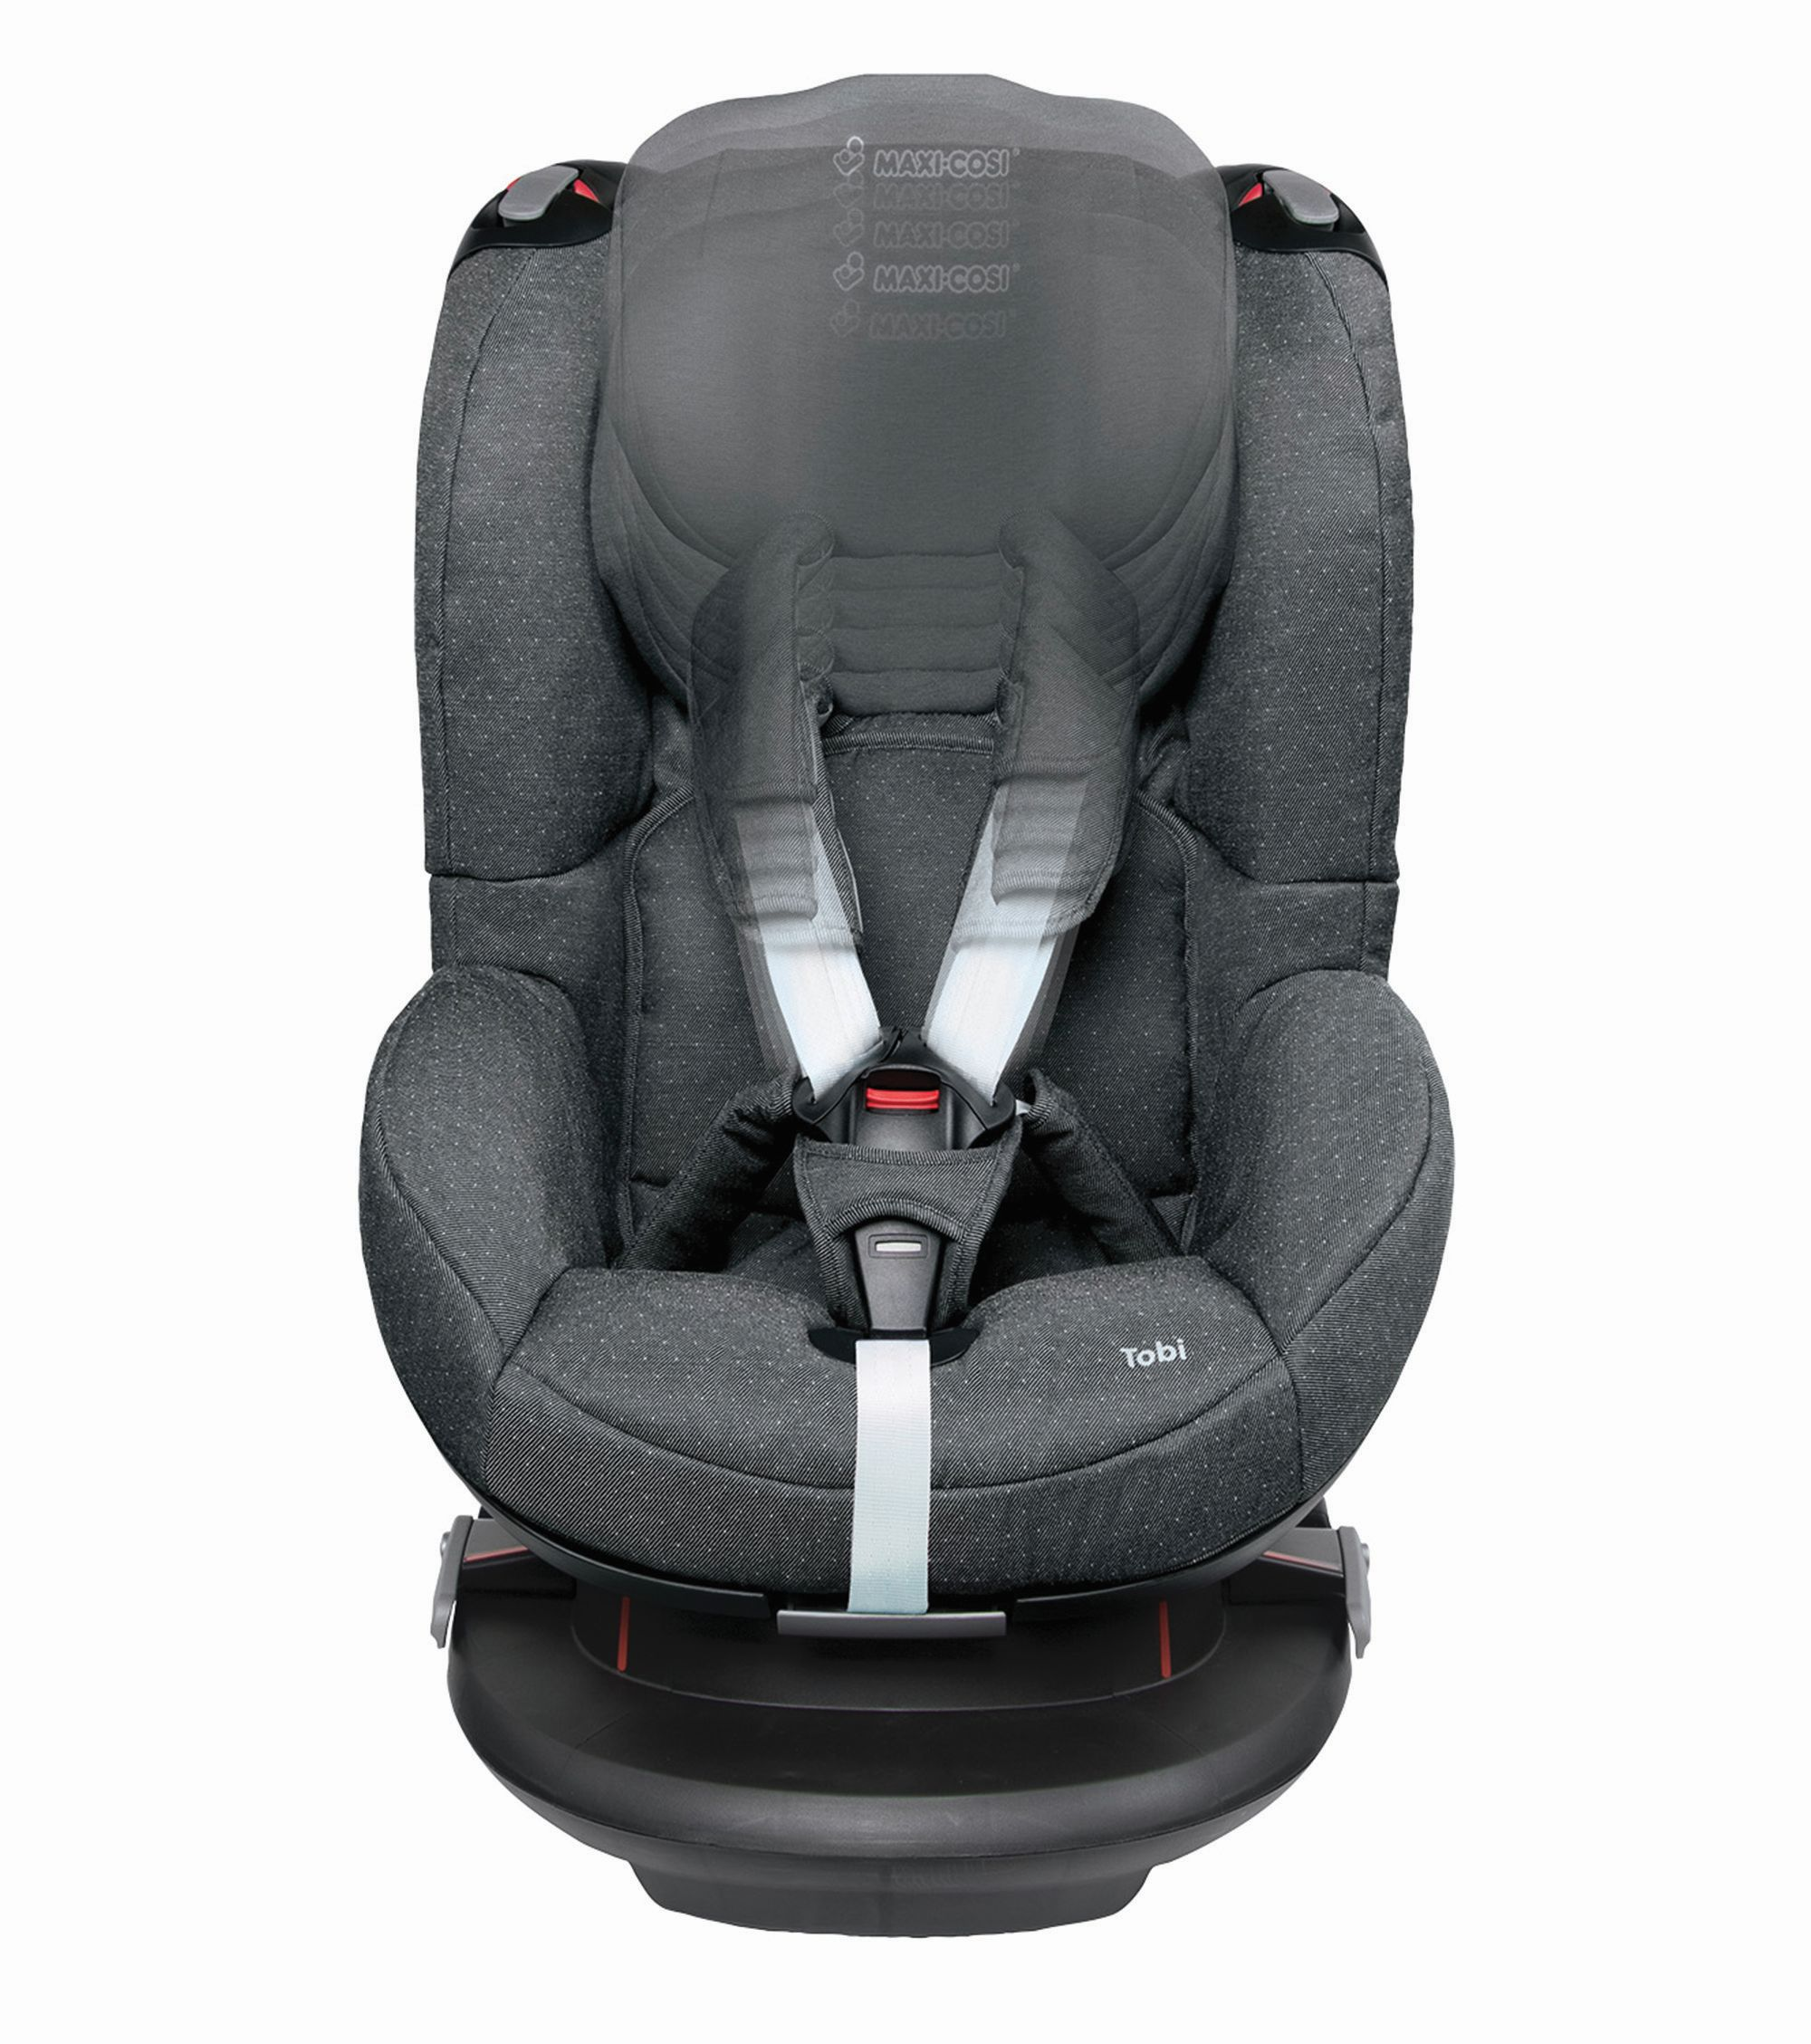 maxi cosi child car seat tobi 2018 sparkling grey buy at kidsroom car seats. Black Bedroom Furniture Sets. Home Design Ideas